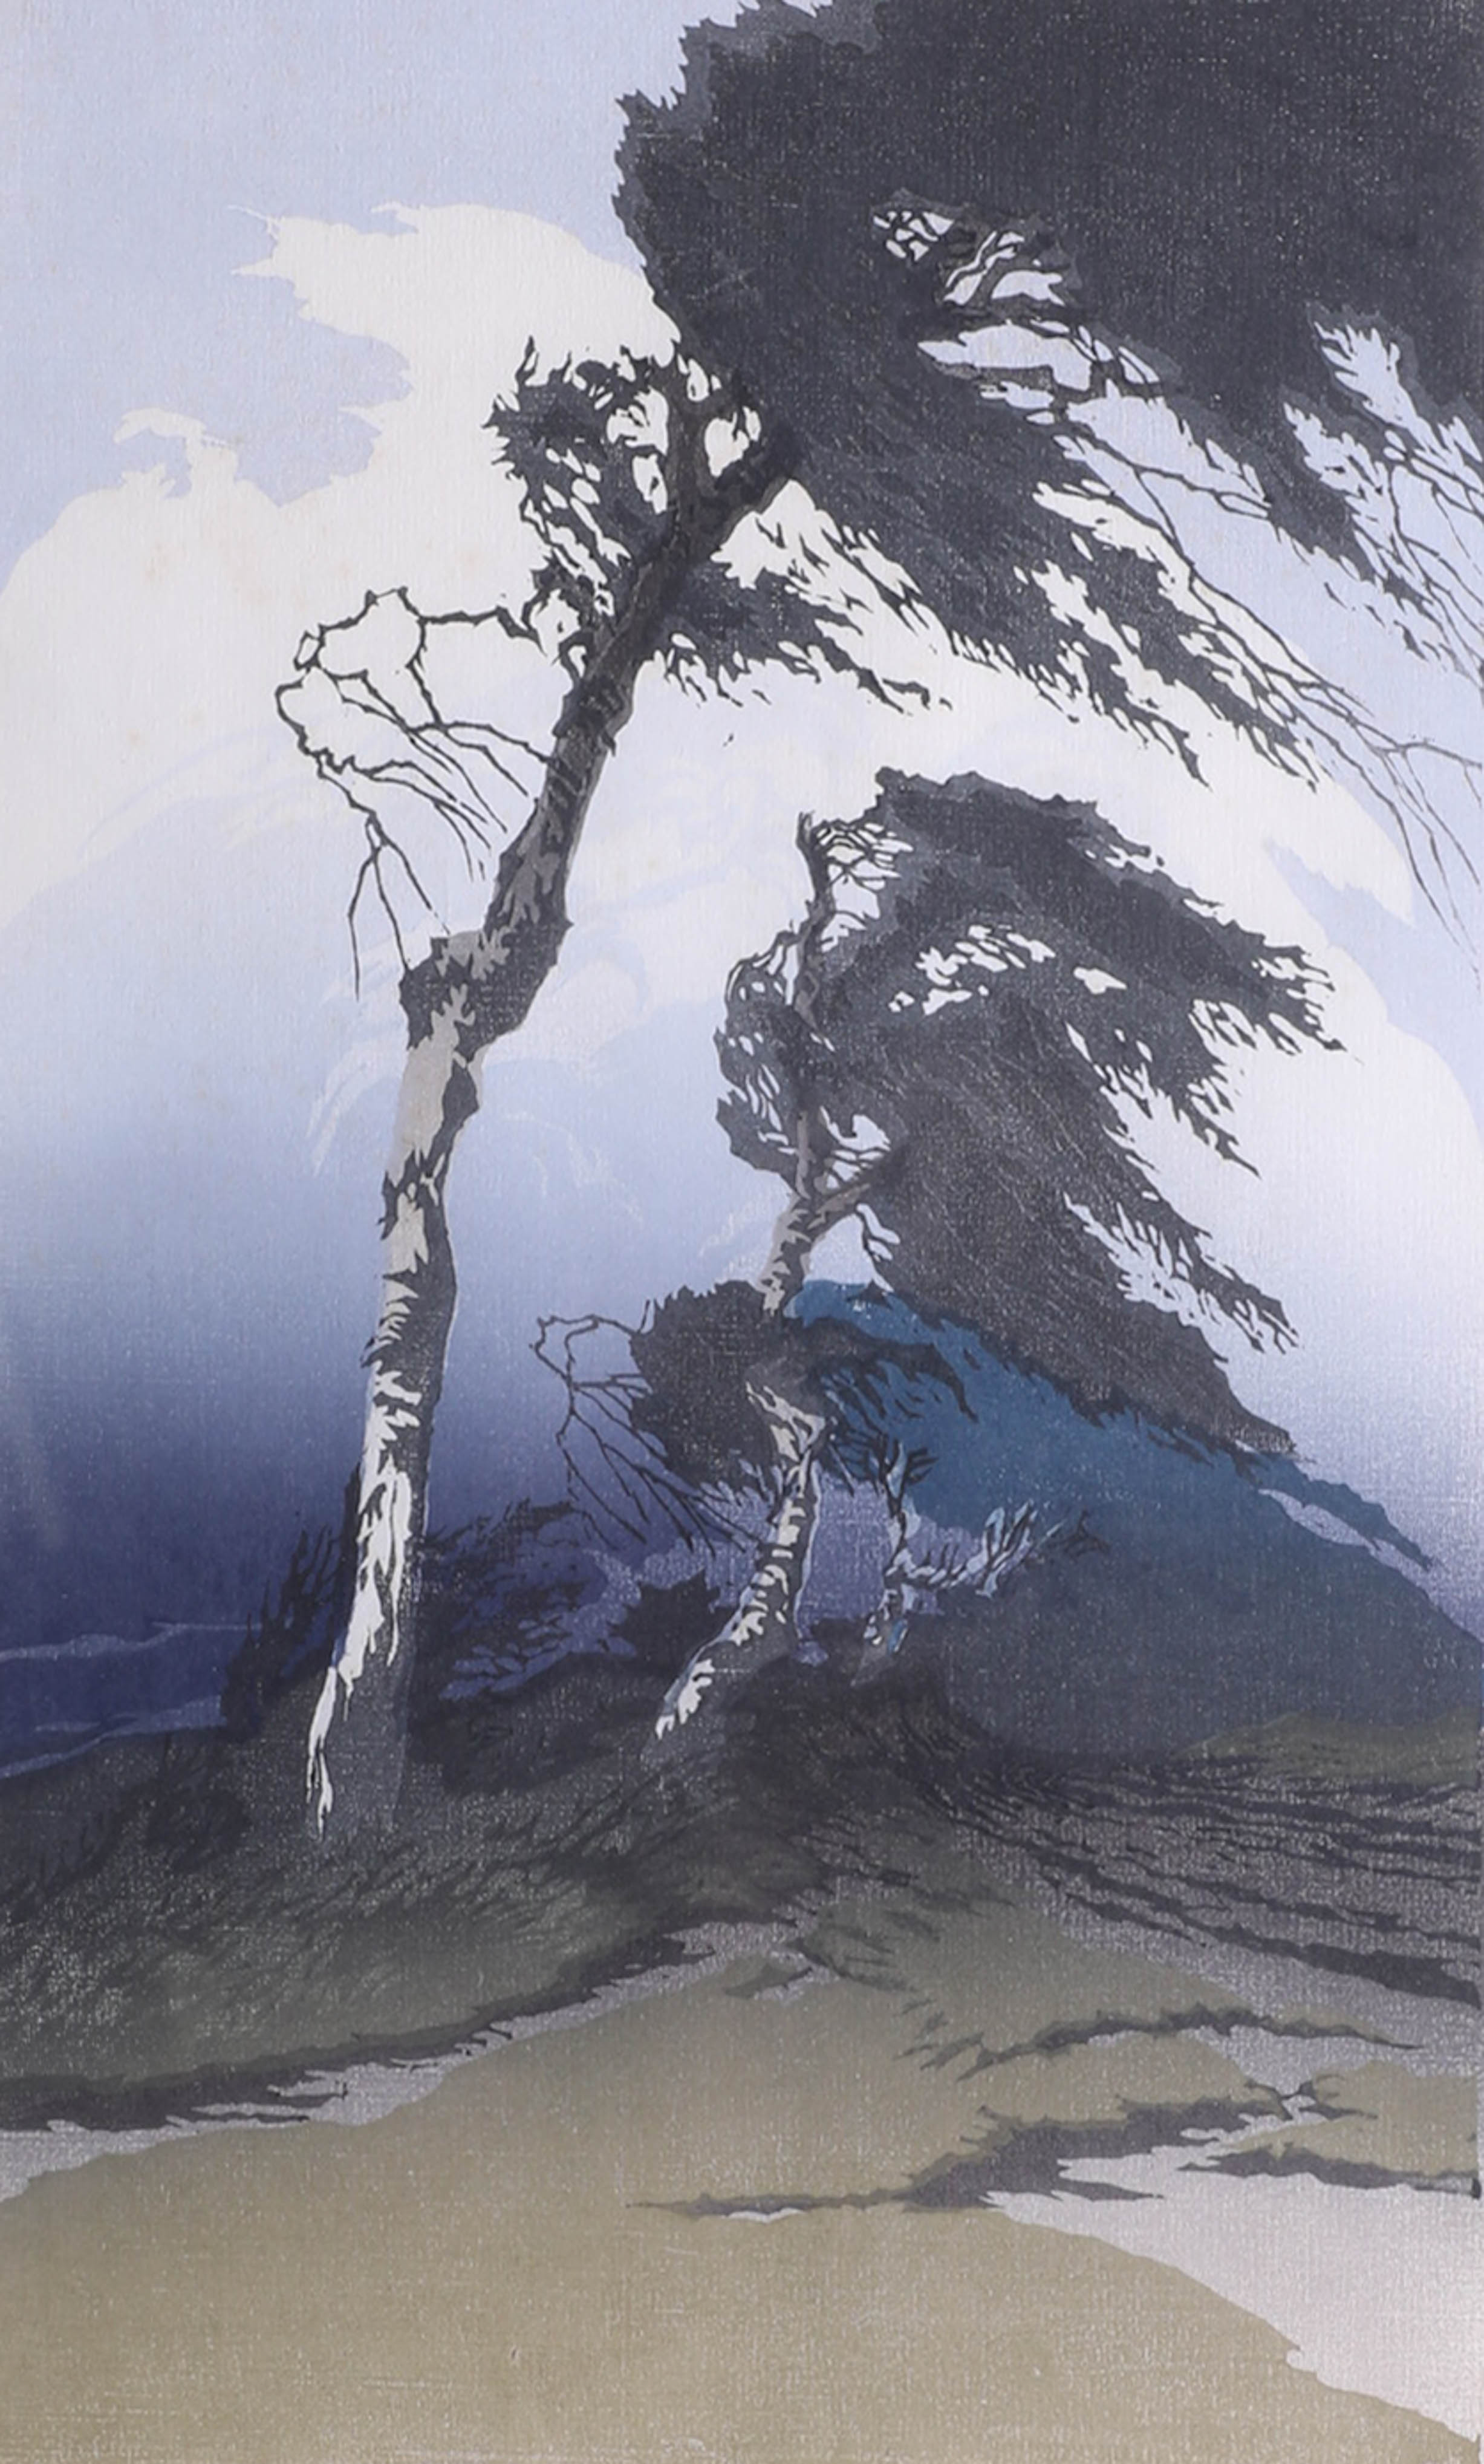 Lot 045 - Oscar Droege (1898-1982 German), signed woodcut print 'Birch Trees in a Storm' image size 40cm x